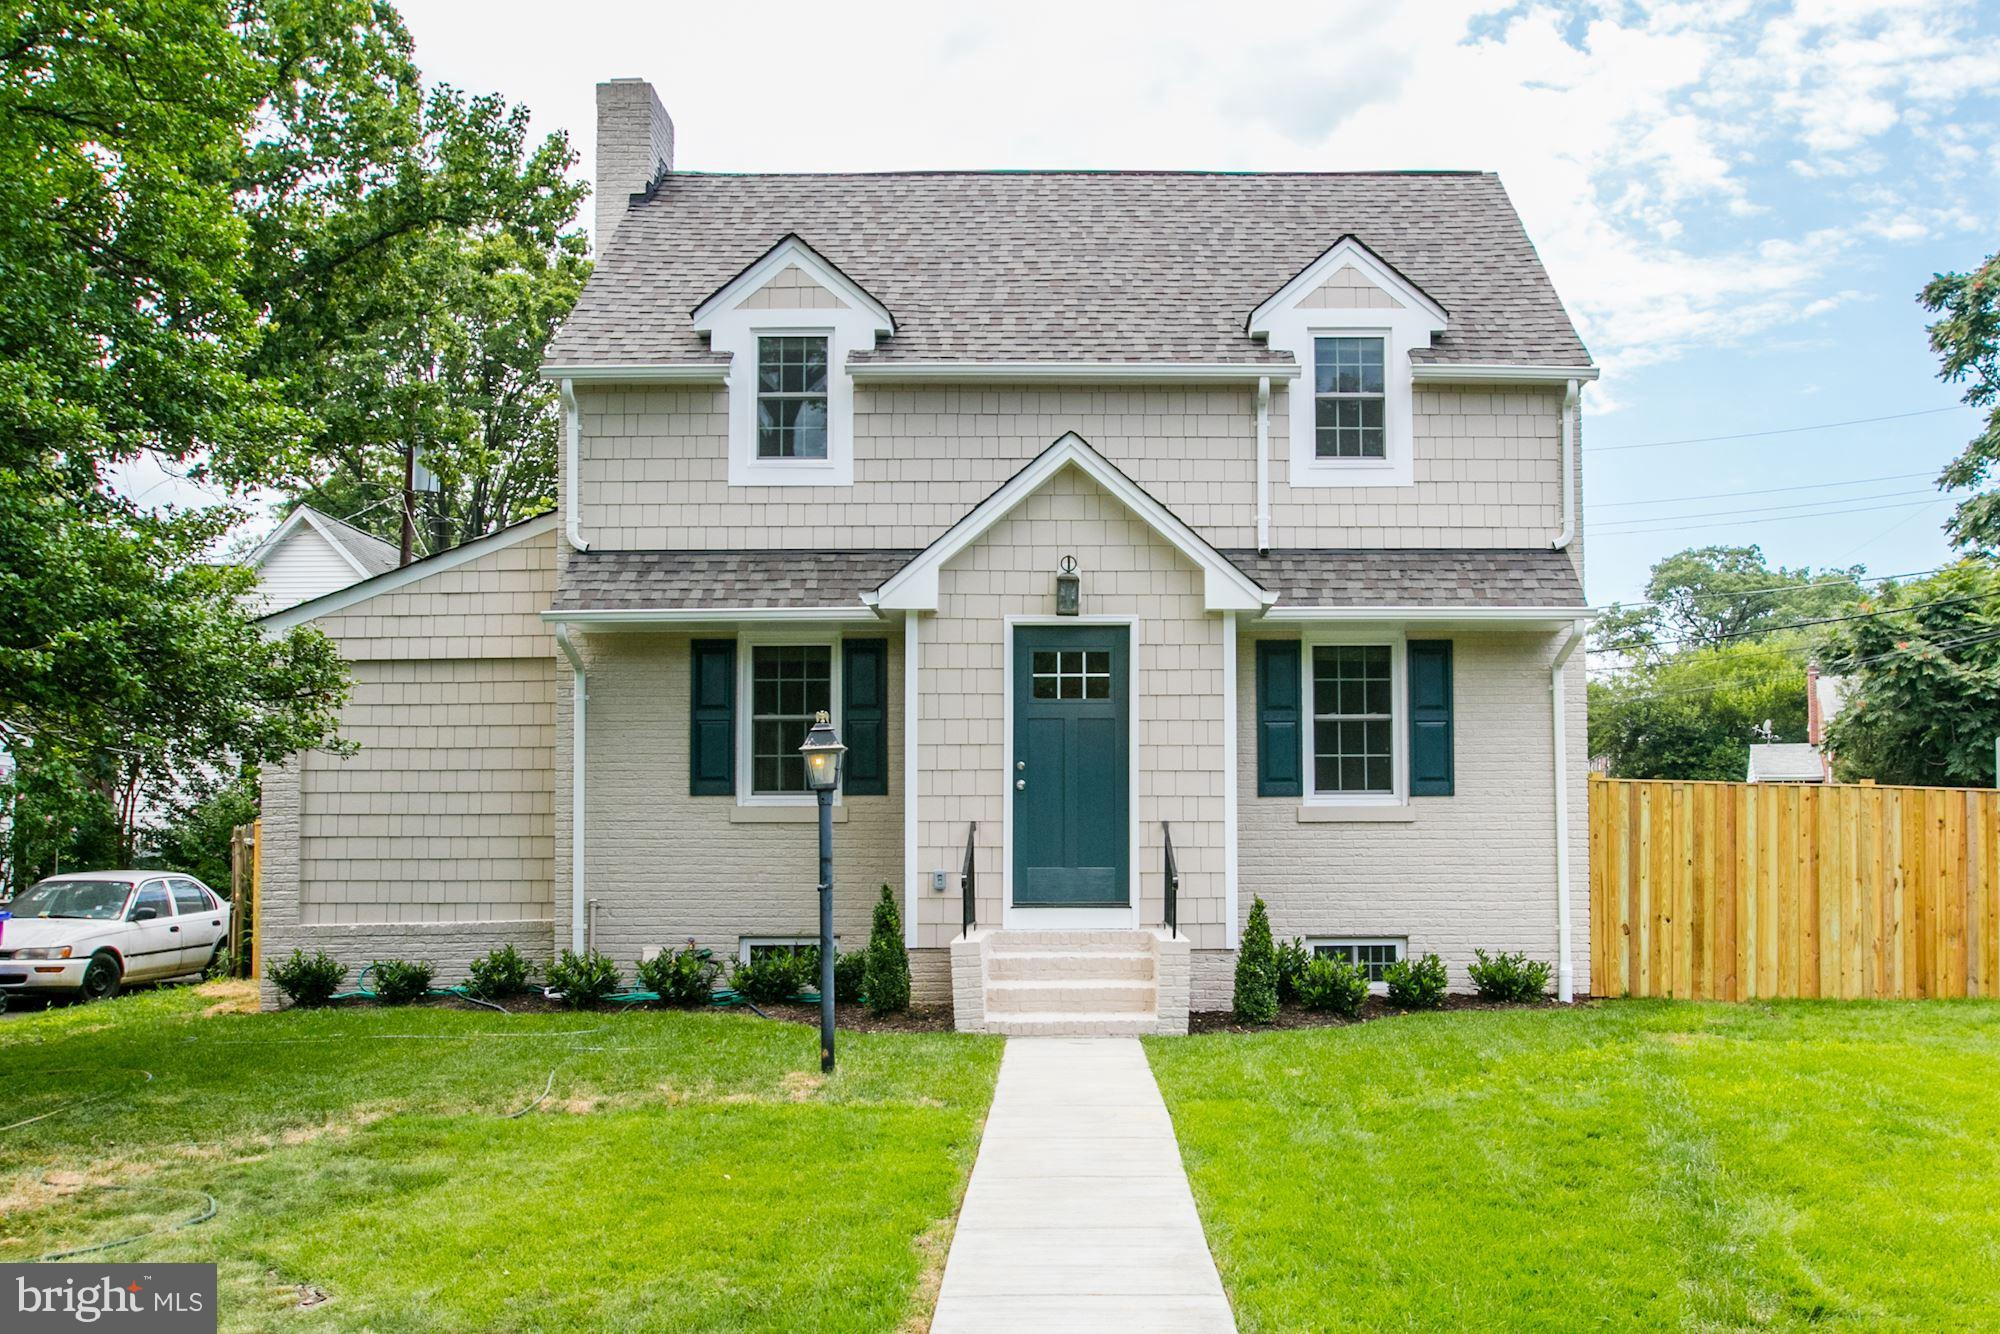 Totally renovated and move-in ready 4 bedroom 3 full bath detached home with gourmet kitchen, hardwood floors, fenced back yard and detached garage. Moments to Ballston Metro, shopping and dining. Easy access to DC, Tysons and more. Longer lease preferred. OPEN HOUSE ON FRIDAY 5:30PM - 6:30PM.